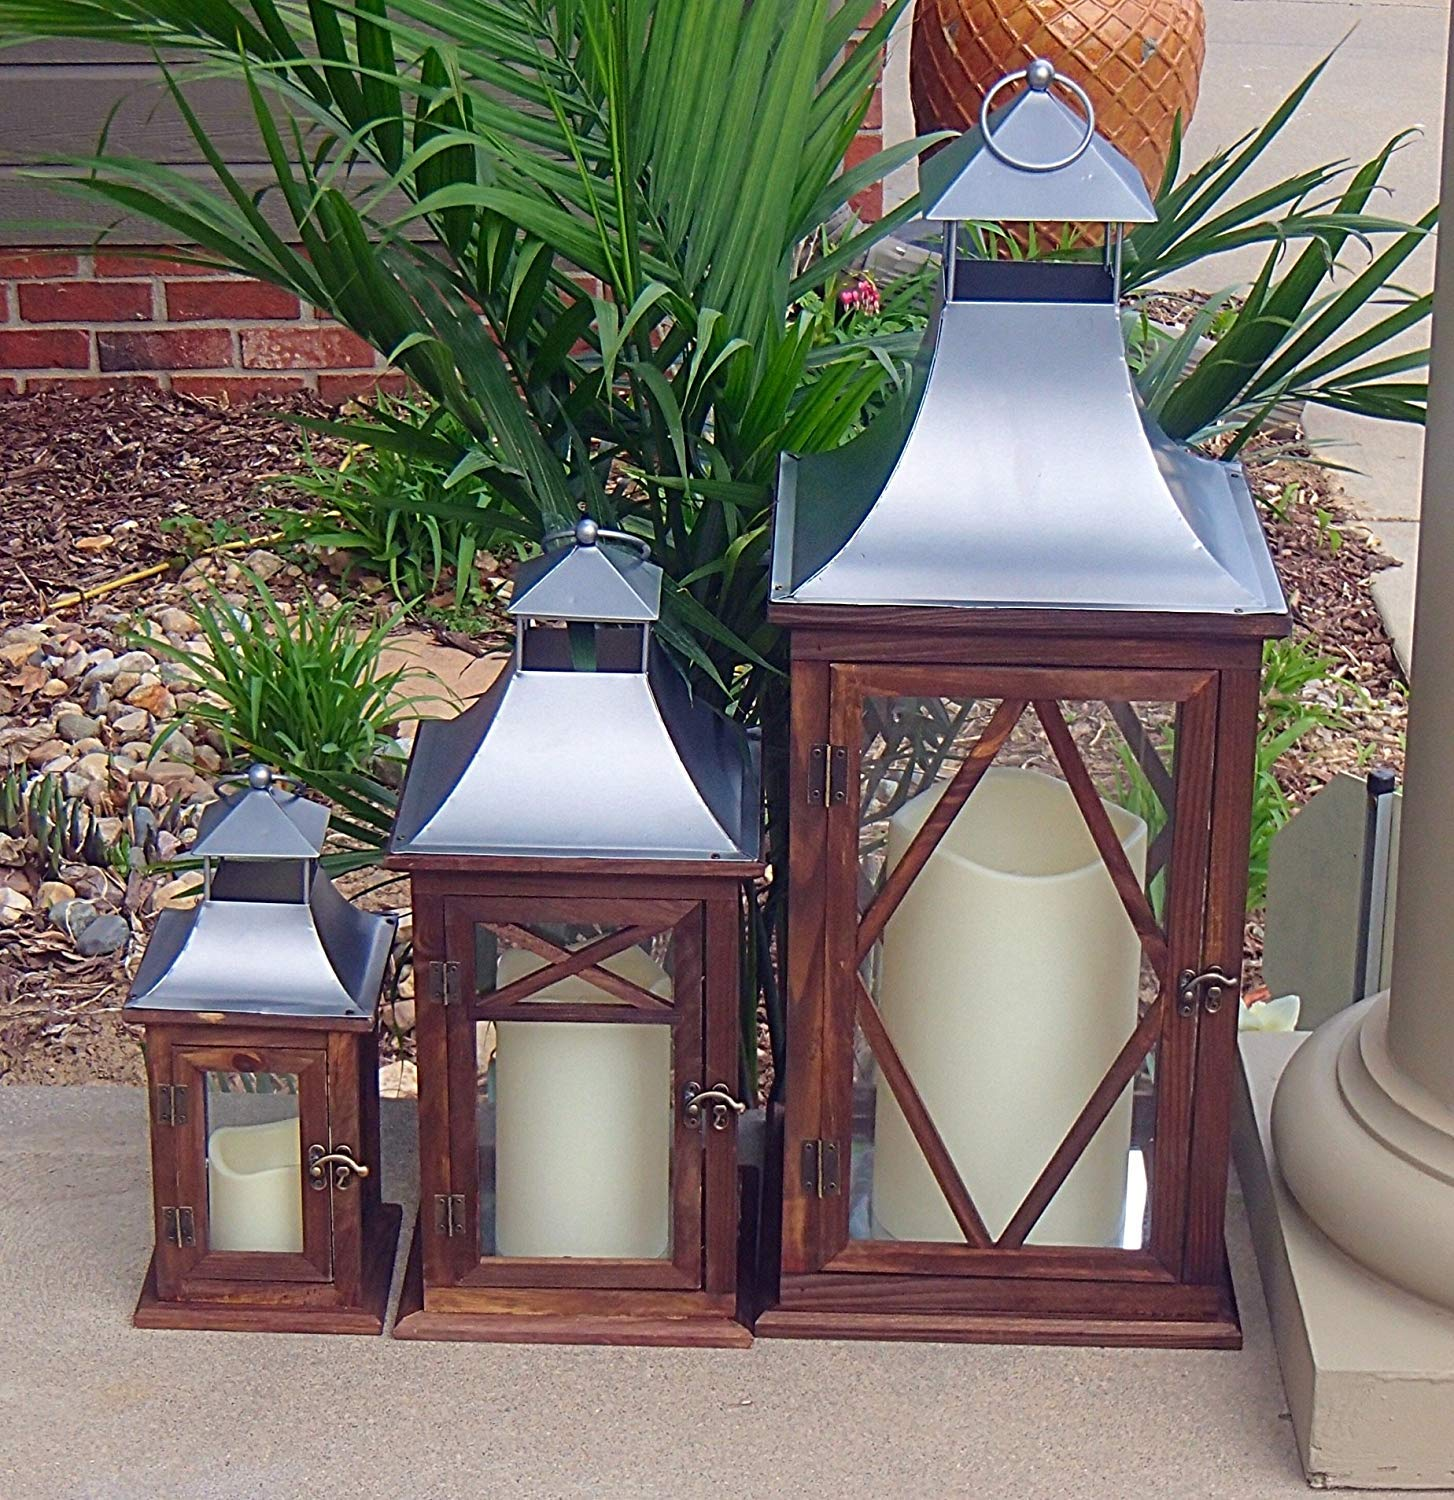 Pebble Lane Living NANTUCKETWHITE Indoor/Outdoor Candle Lanterns, Wood with Matte Silver Metal Top Accents & Tempered Glass Panes, Assorted Set of 3